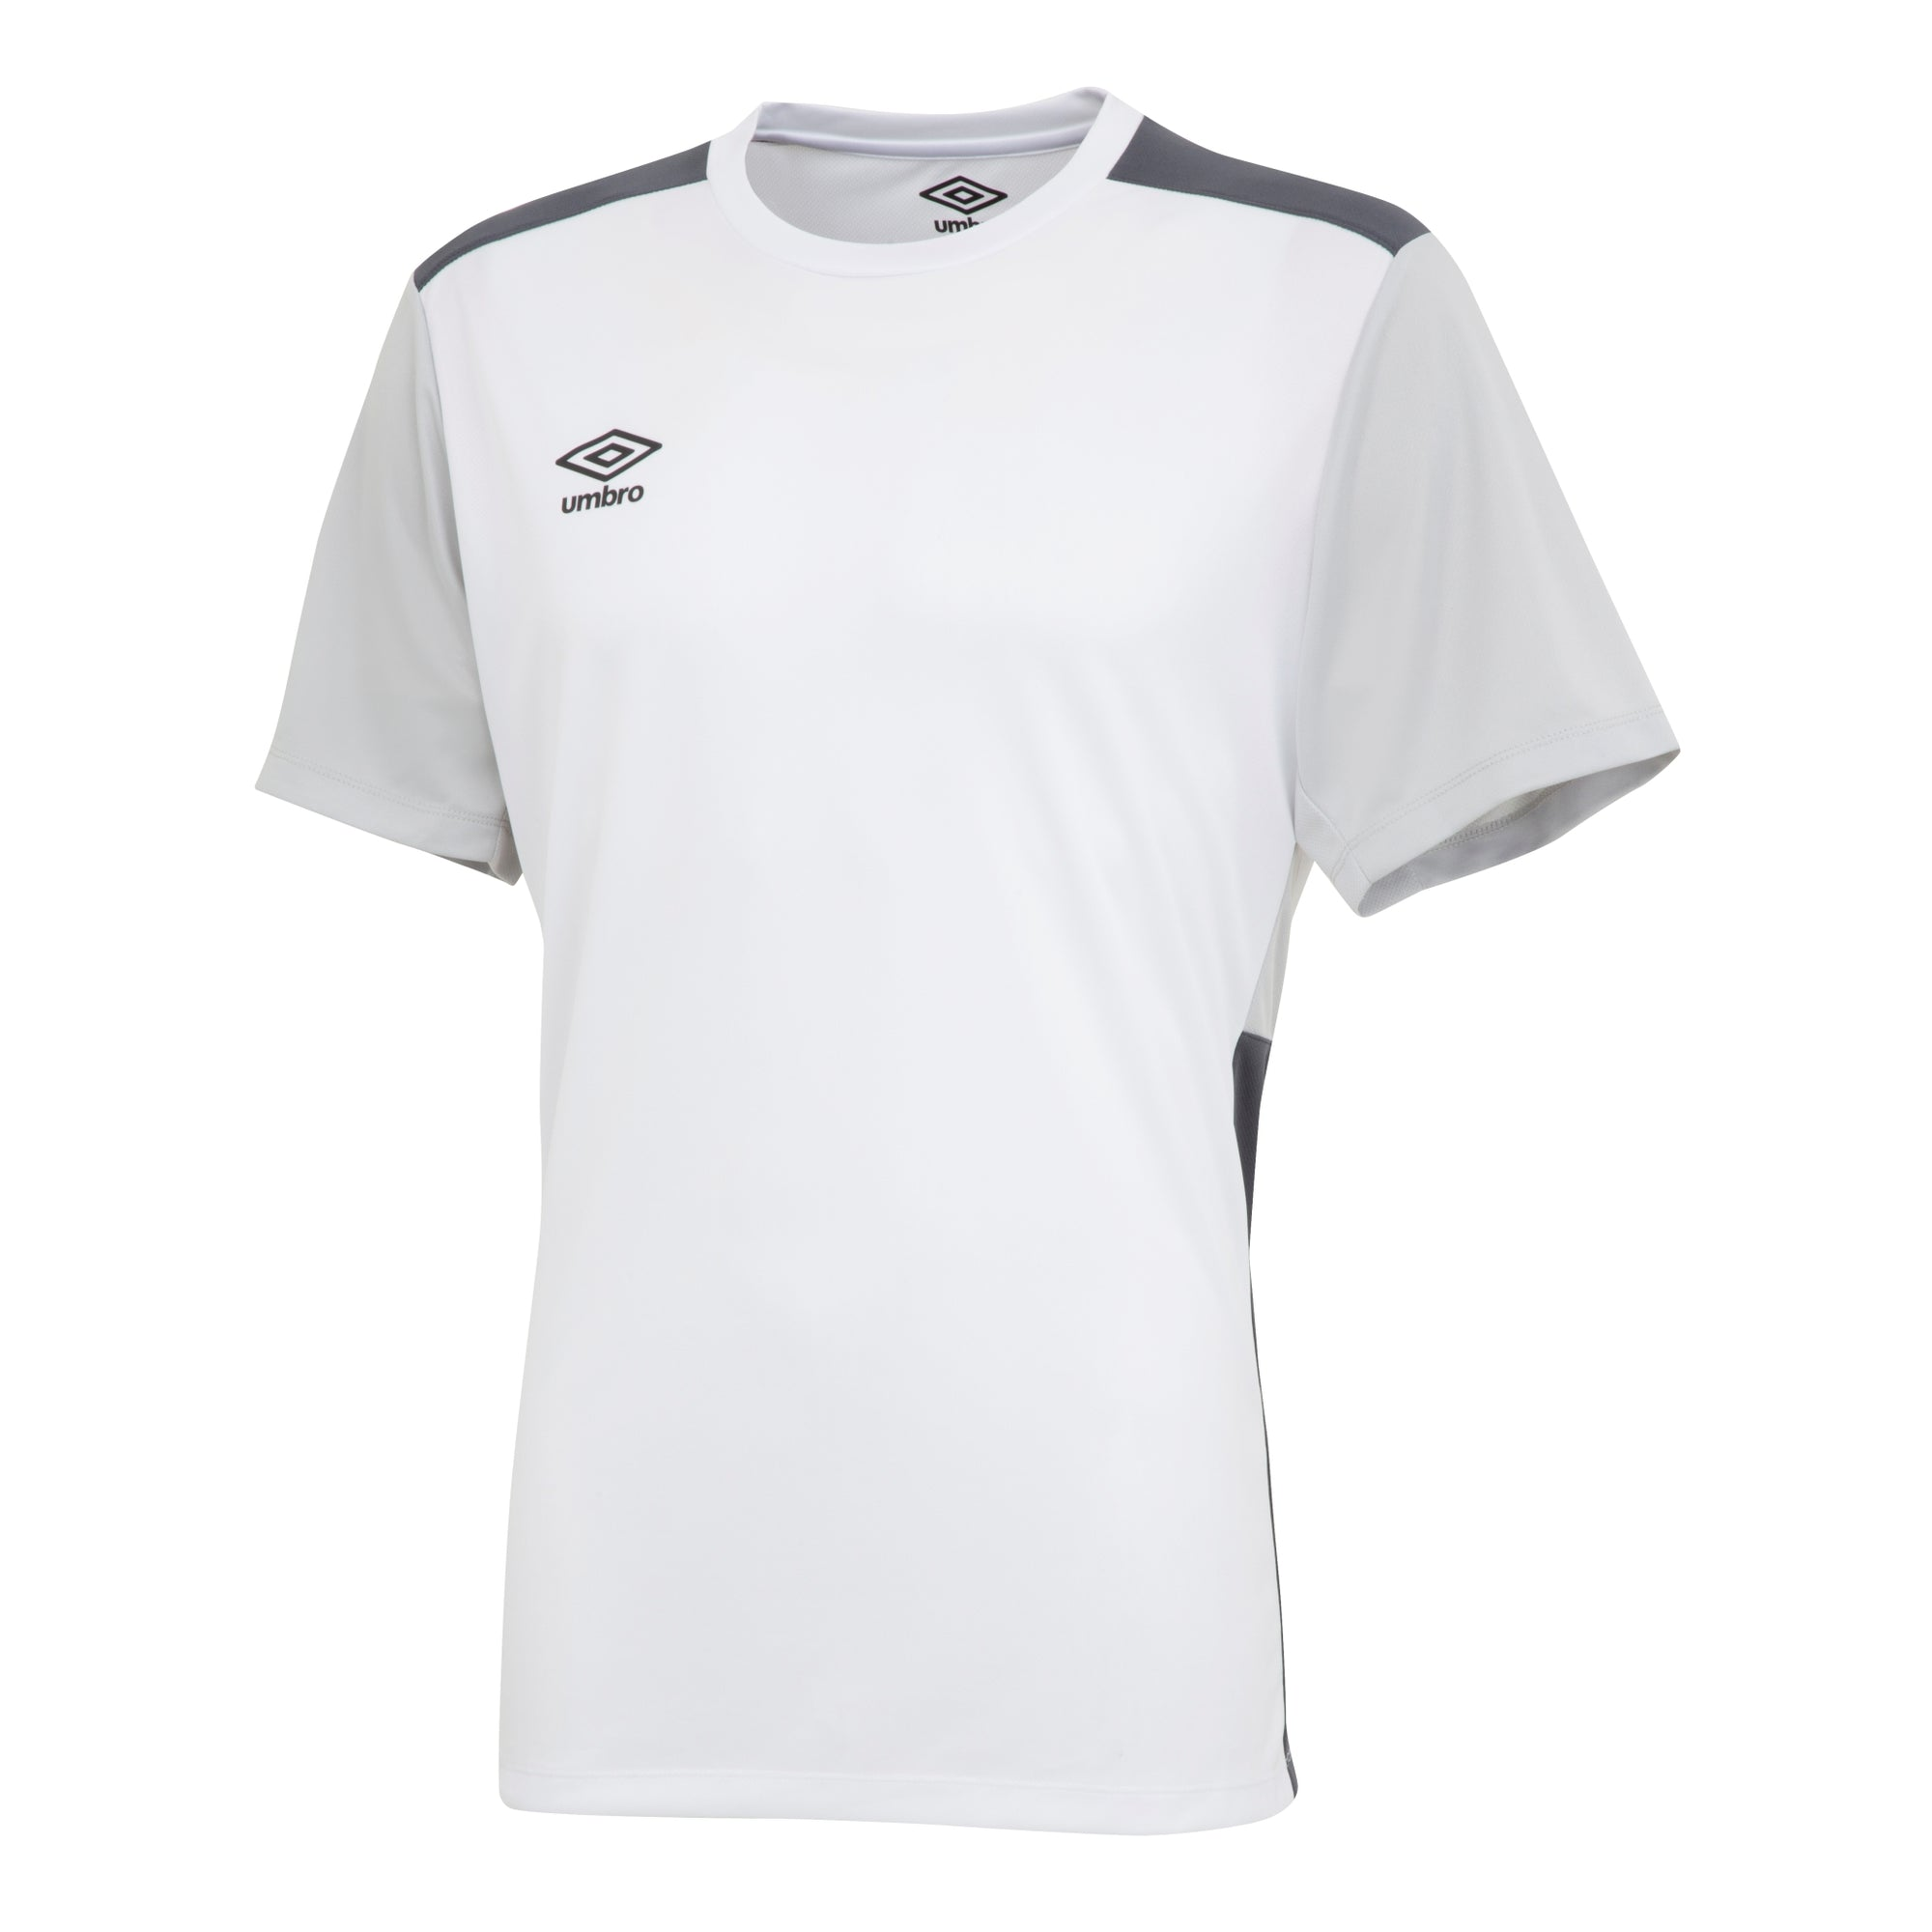 Umbro Training Jersey - White/High Rise/Carbon